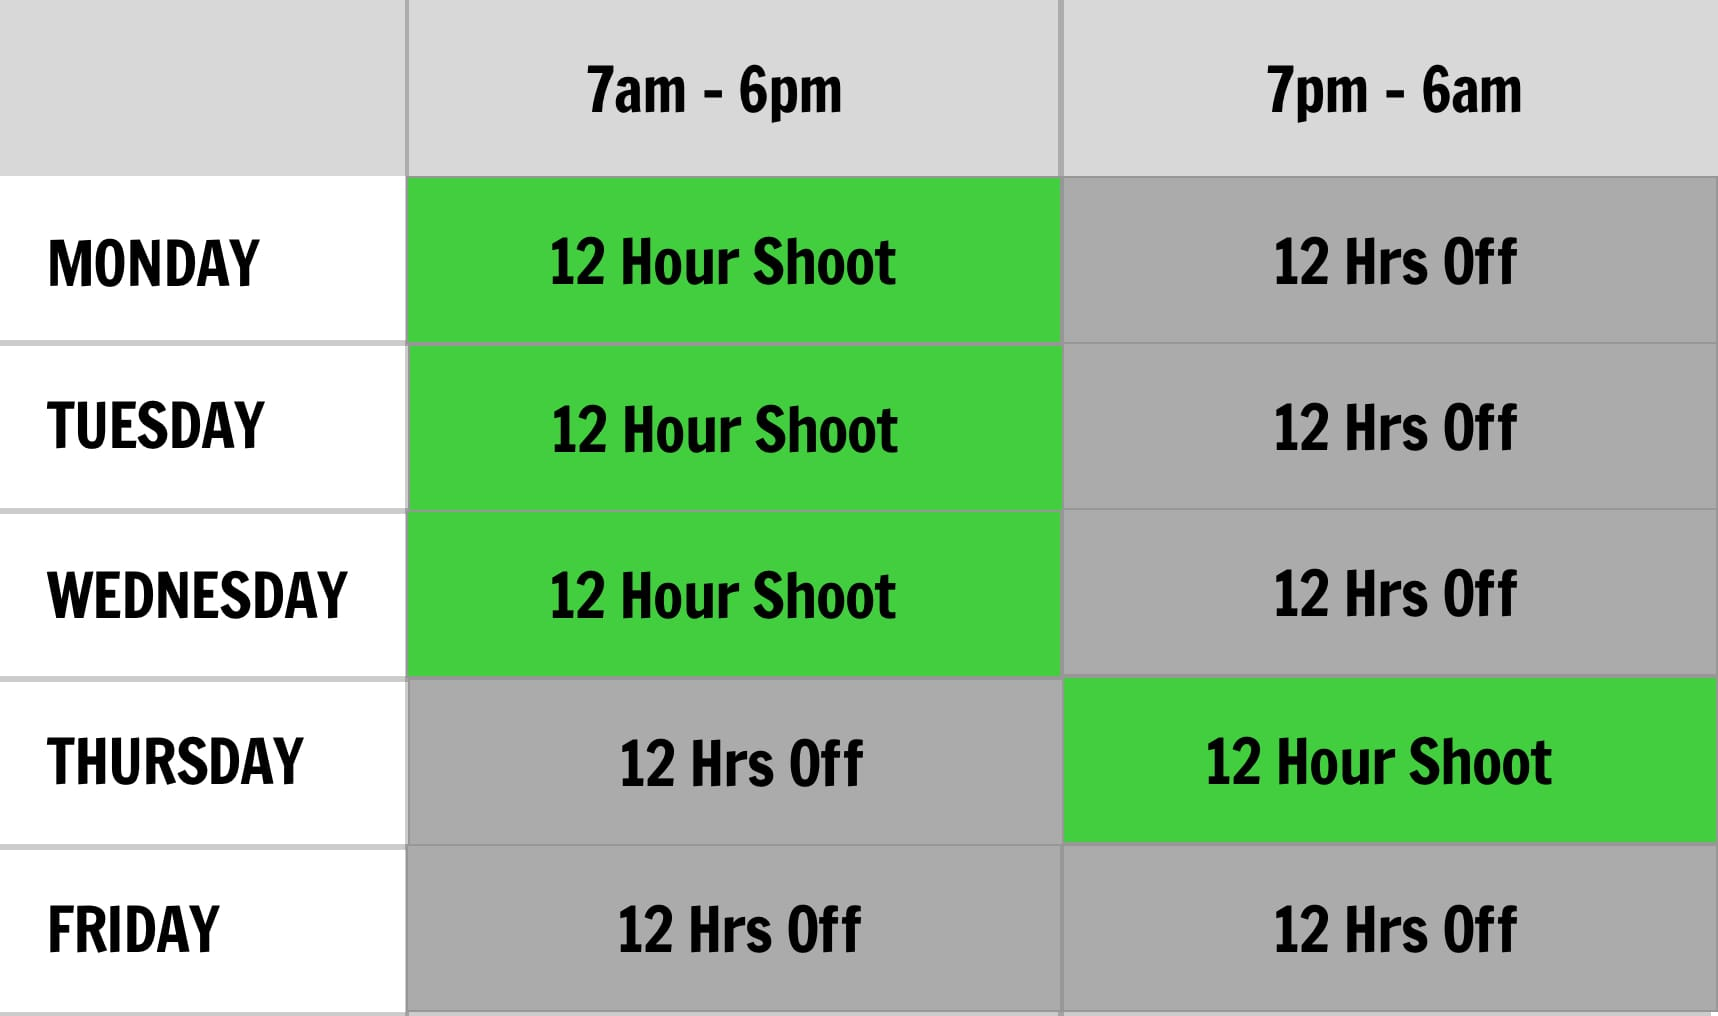 Whether you're shooting at night or during the day, actors must have 12 hours off.